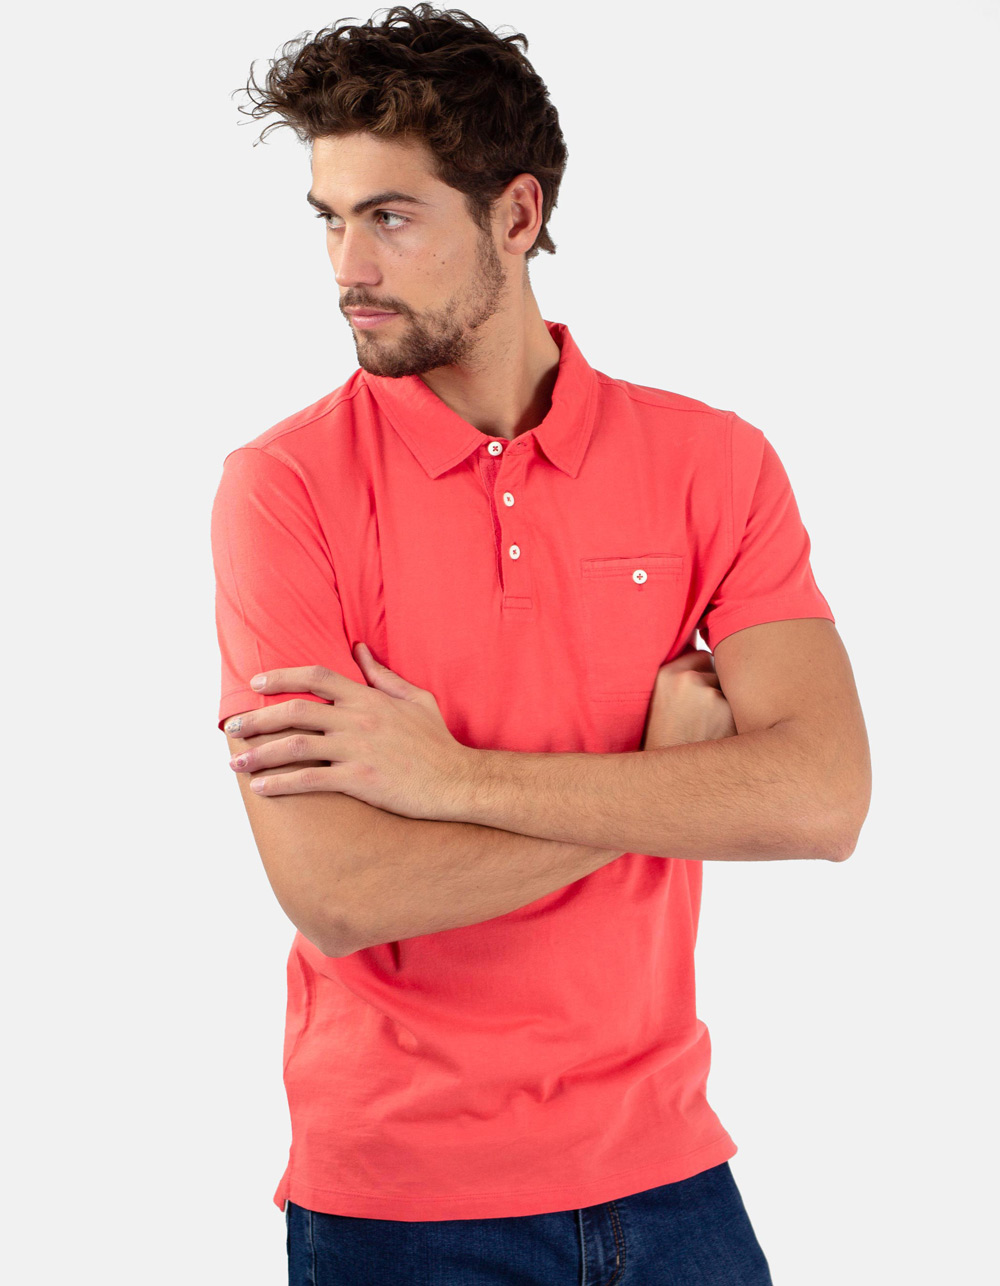 Coral pocket polo shirt